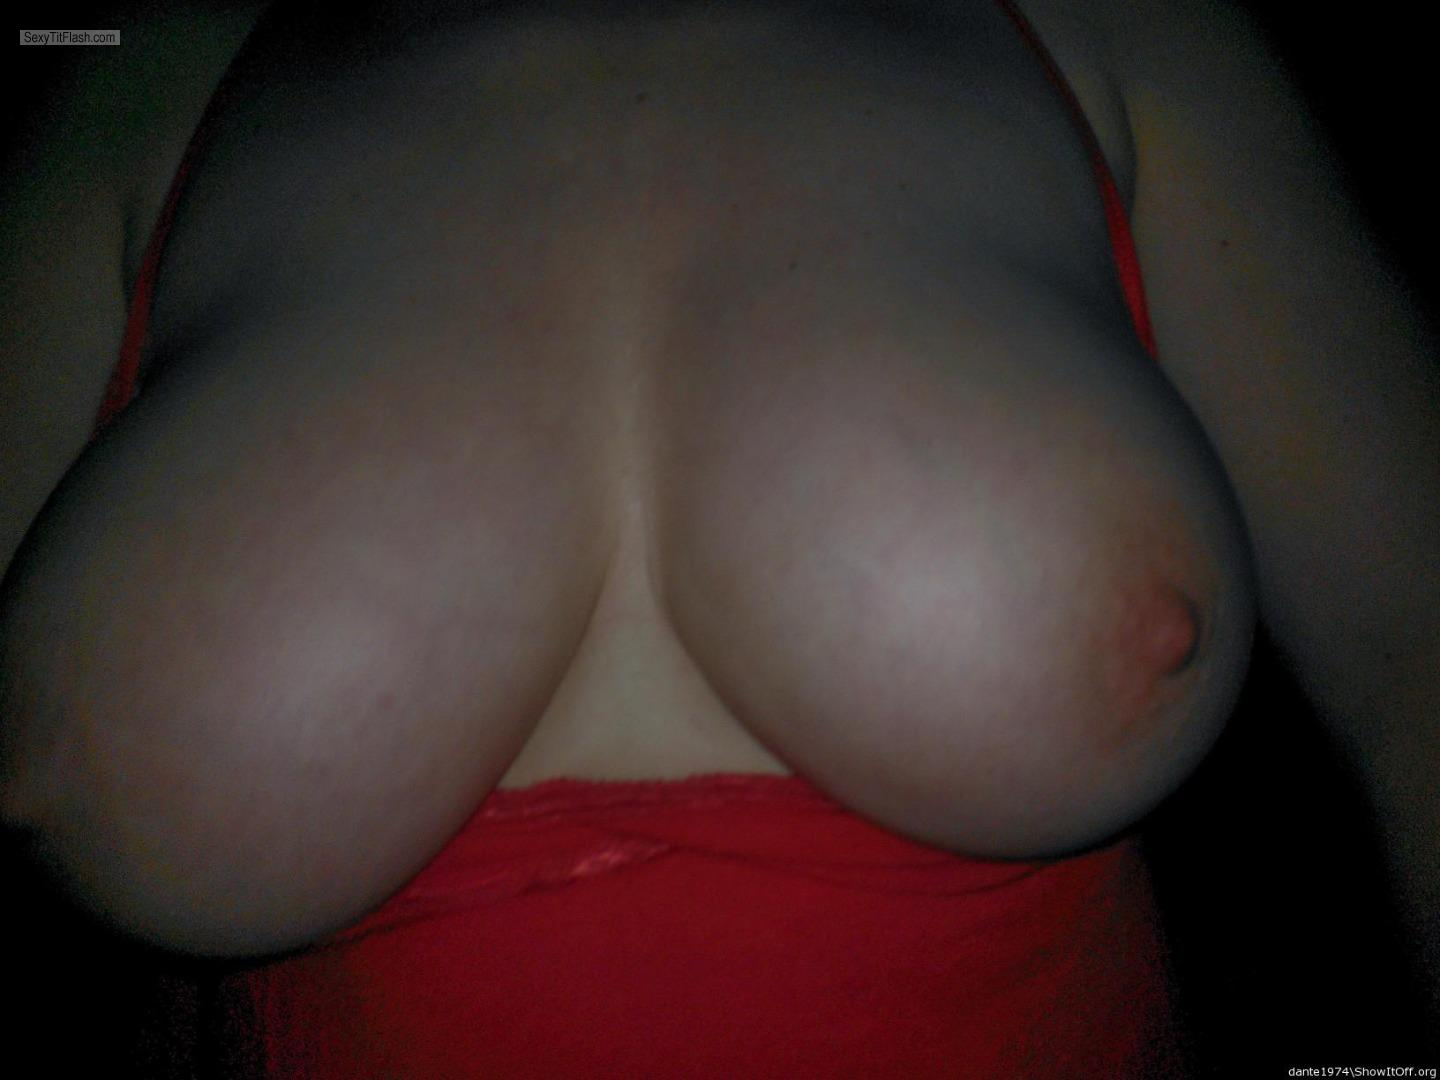 Tit Flash: My Very Big Tits - Lisa from United States